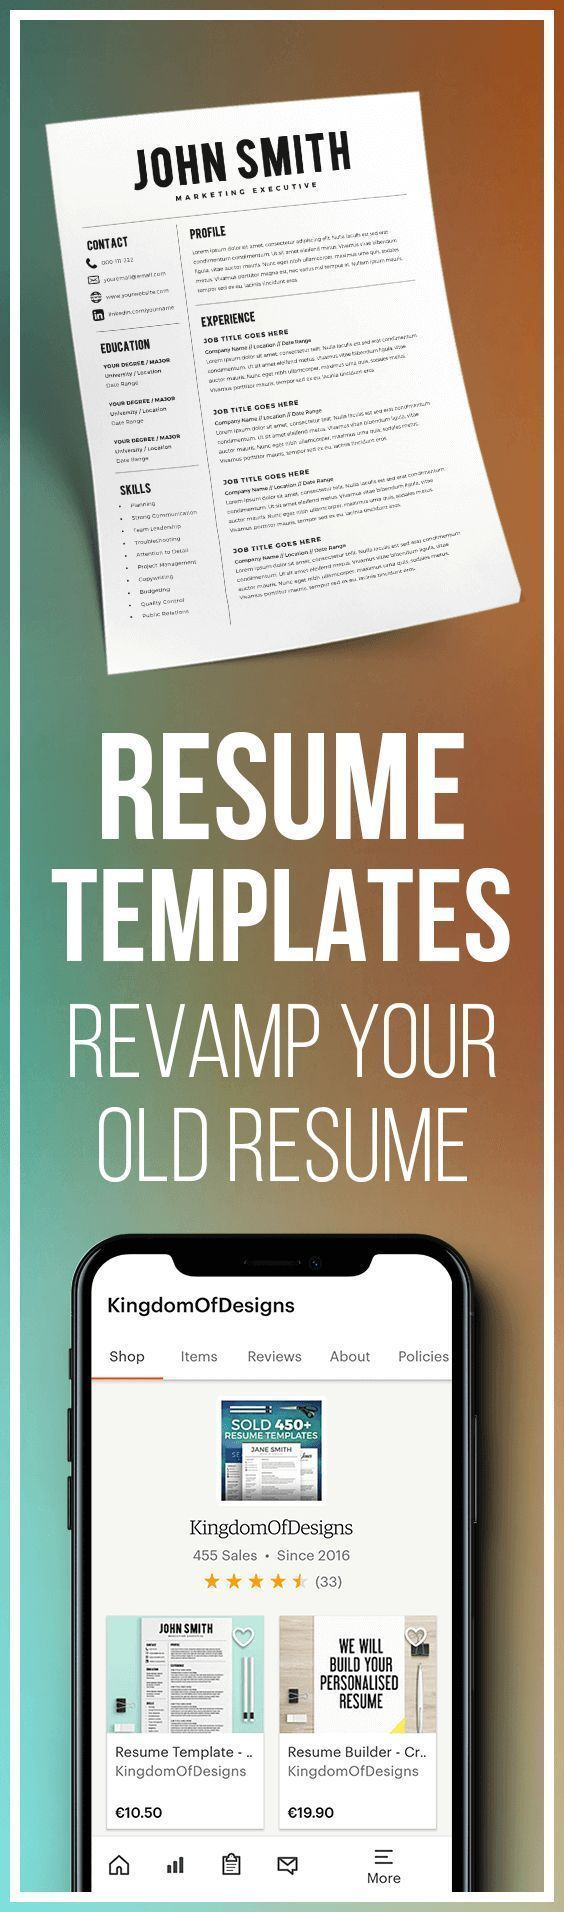 Best 25 Free Resume Builder Ideas On Pinterest Resume Builder